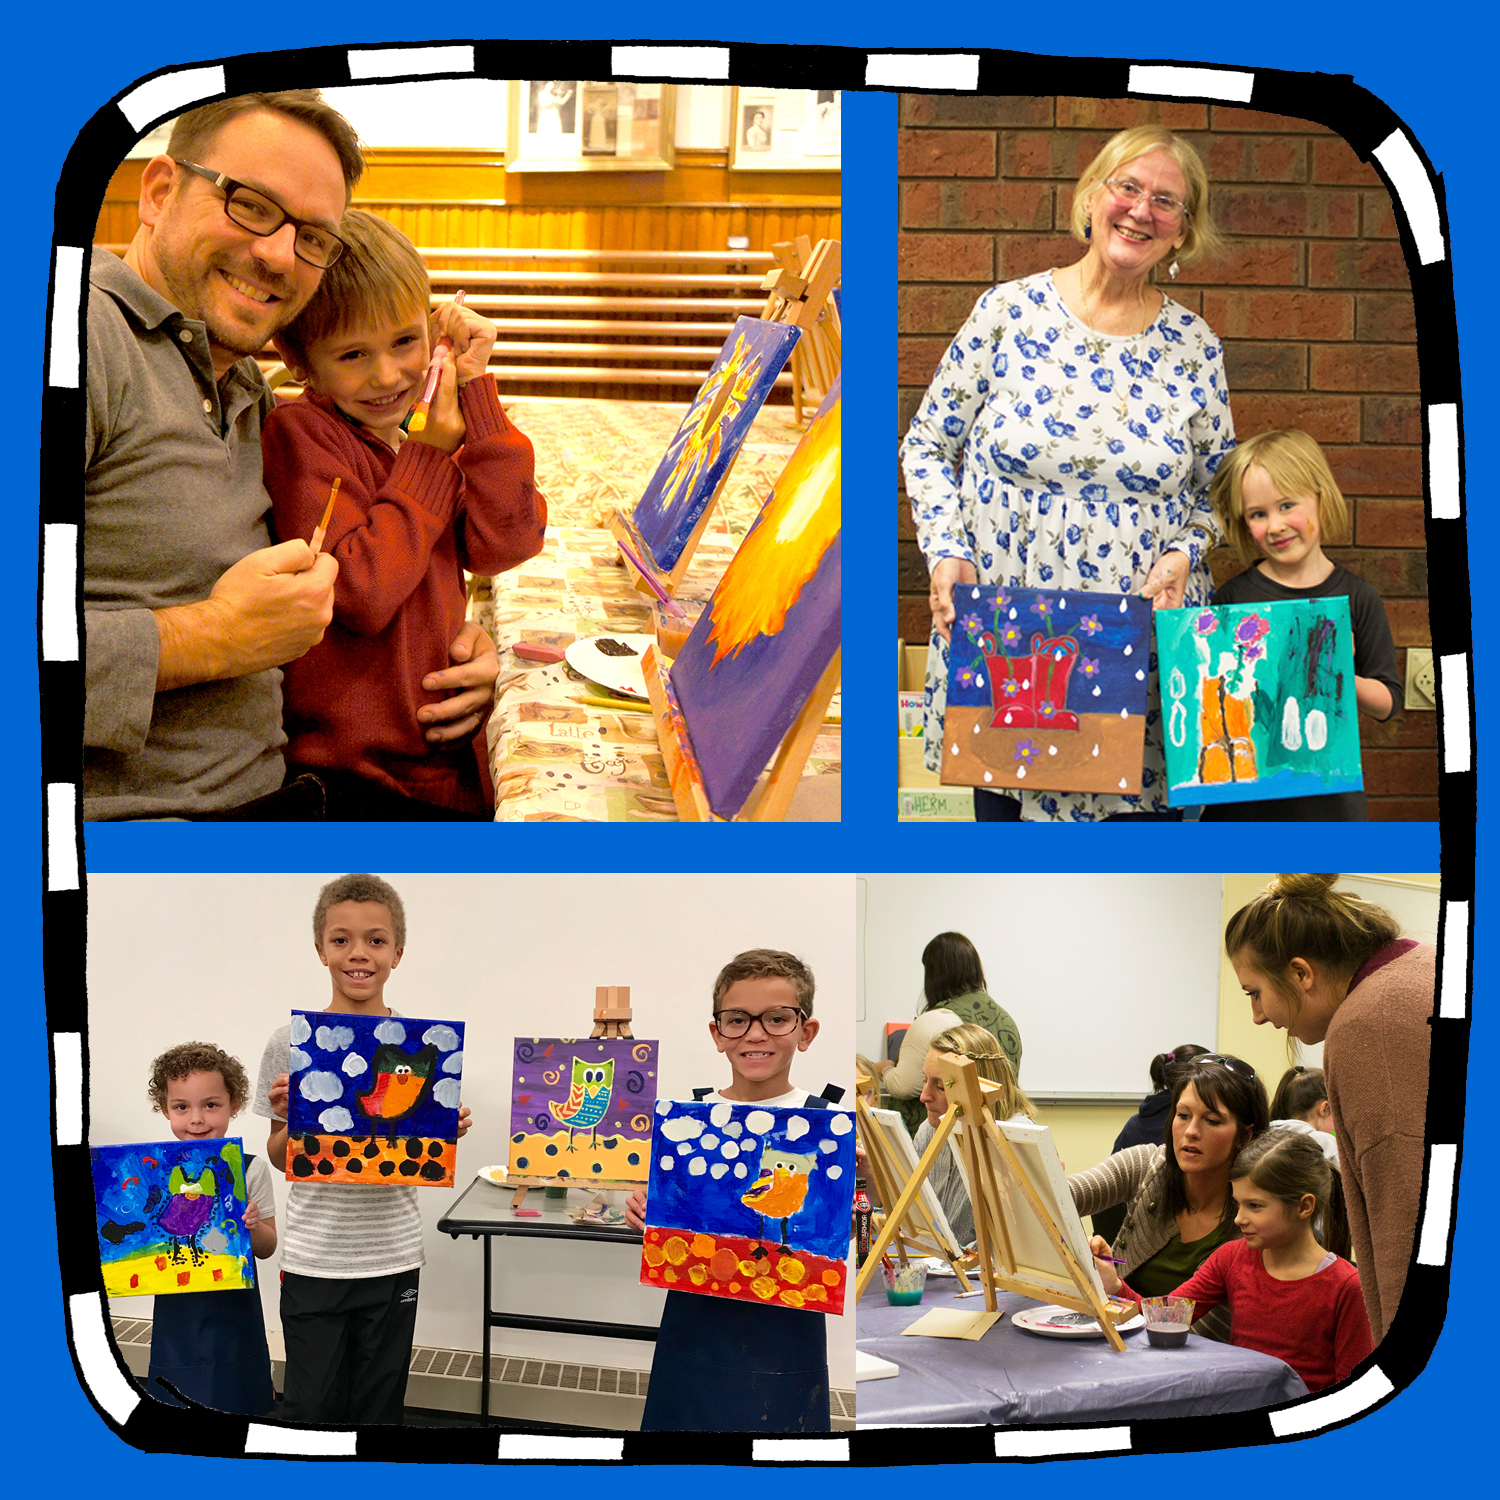 """""""CANVAS CREATIONS""""Parent/child painting classes - Location: UW-Stout library (2nd floor)Flexible evenings or weekends:One night per week, 6-8pmOR Saturdays or Sundays (2-hour class)Estimated class size: 10-15Parent/child canvas painting classes. Teach step-by-step canvas painting. All supplies included.(Paid planning and prep time)"""